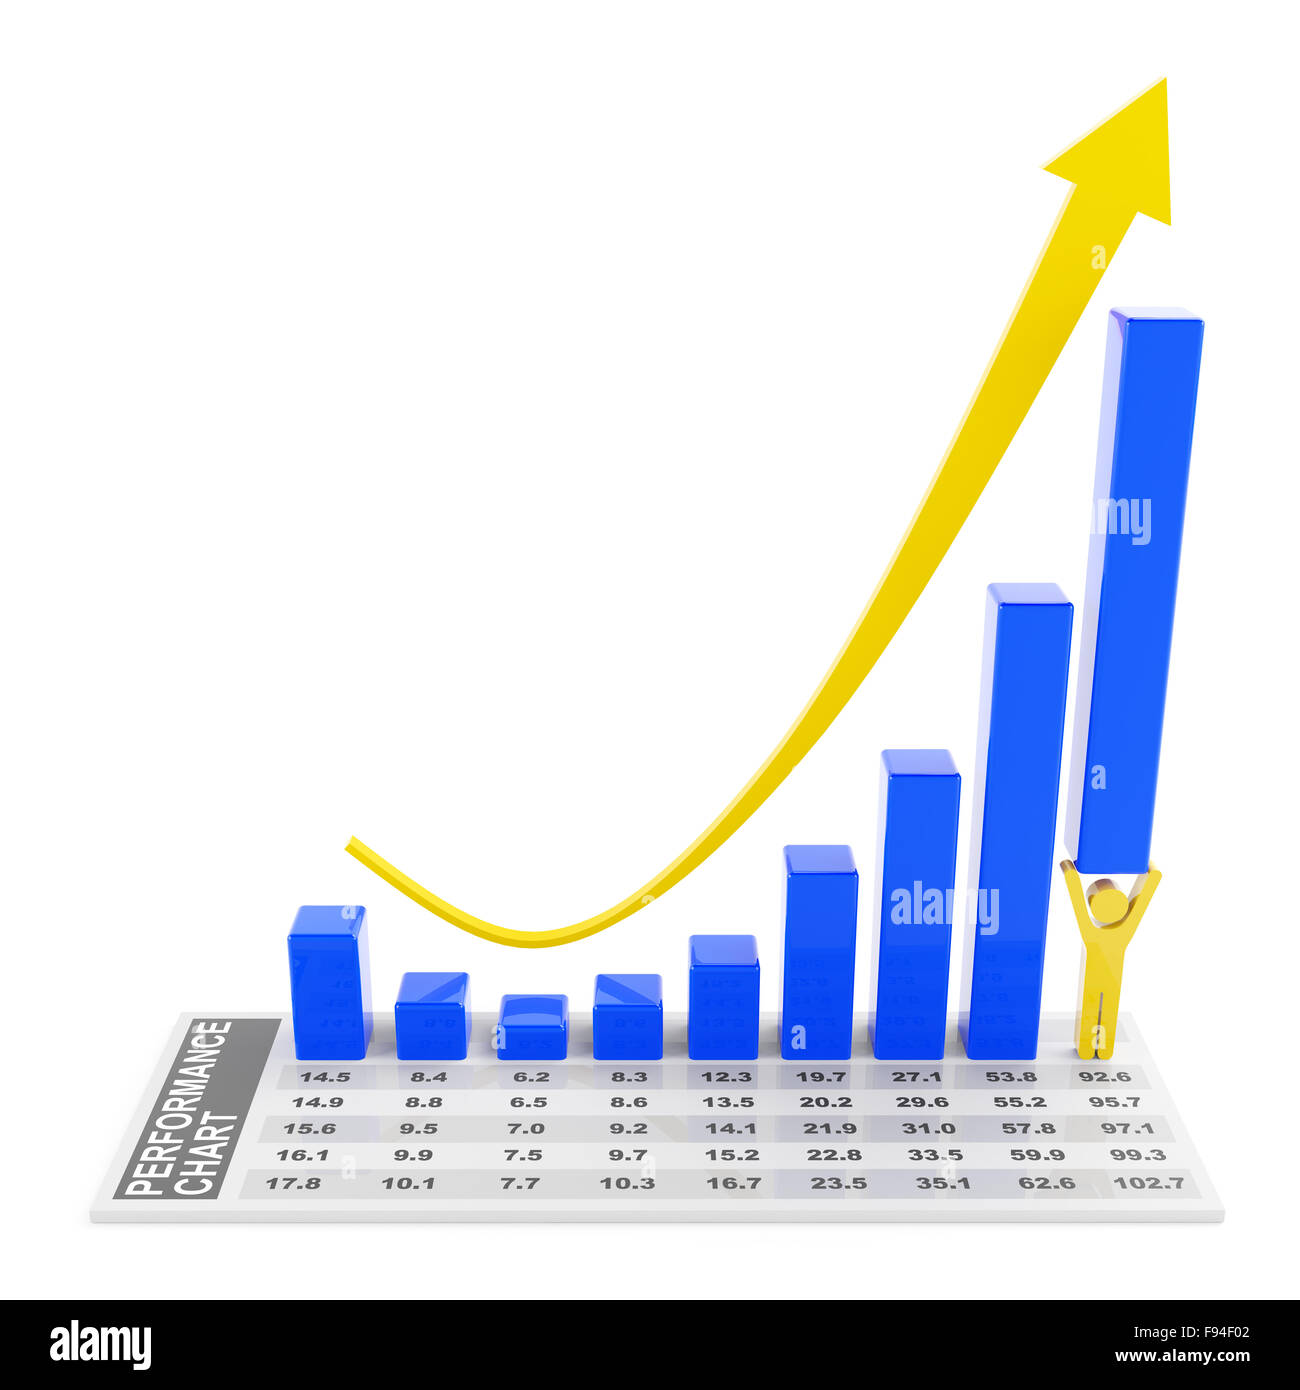 Rebounding Chart With Character Lifting The Tallest Bar Stock Photo 91683314 Alamy